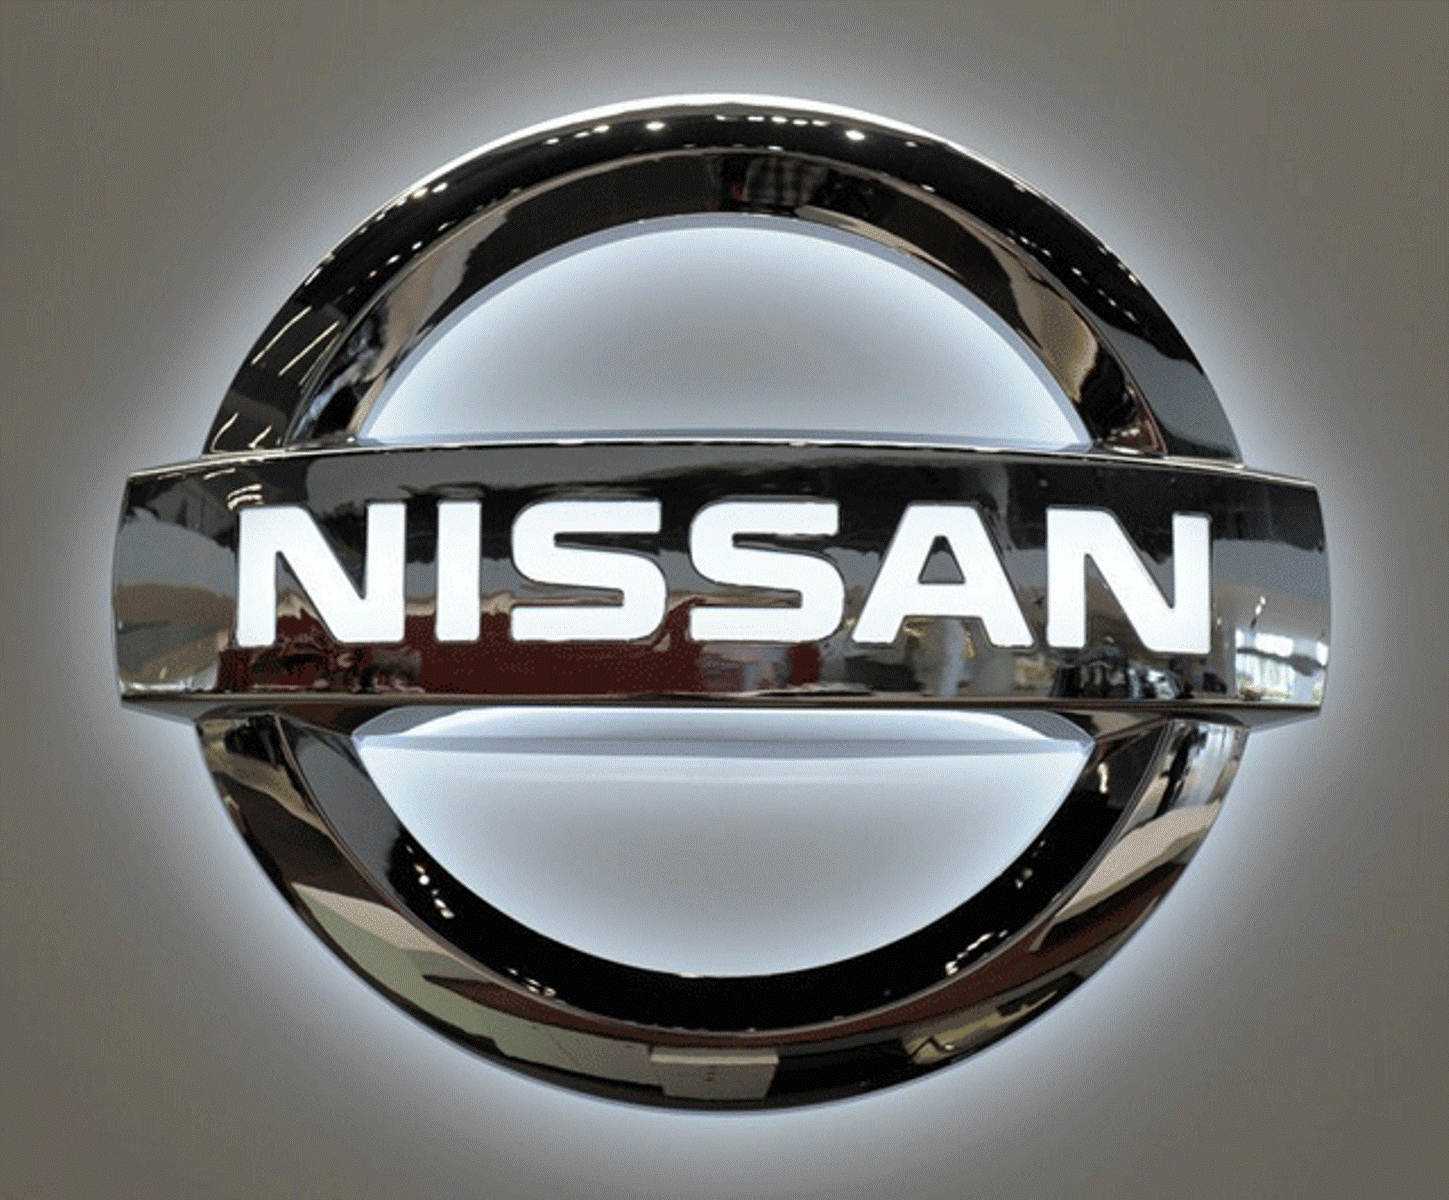 Cool Car Wallpapers 500 Nissan Logo Nissan Car Symbol Meaning And History Car